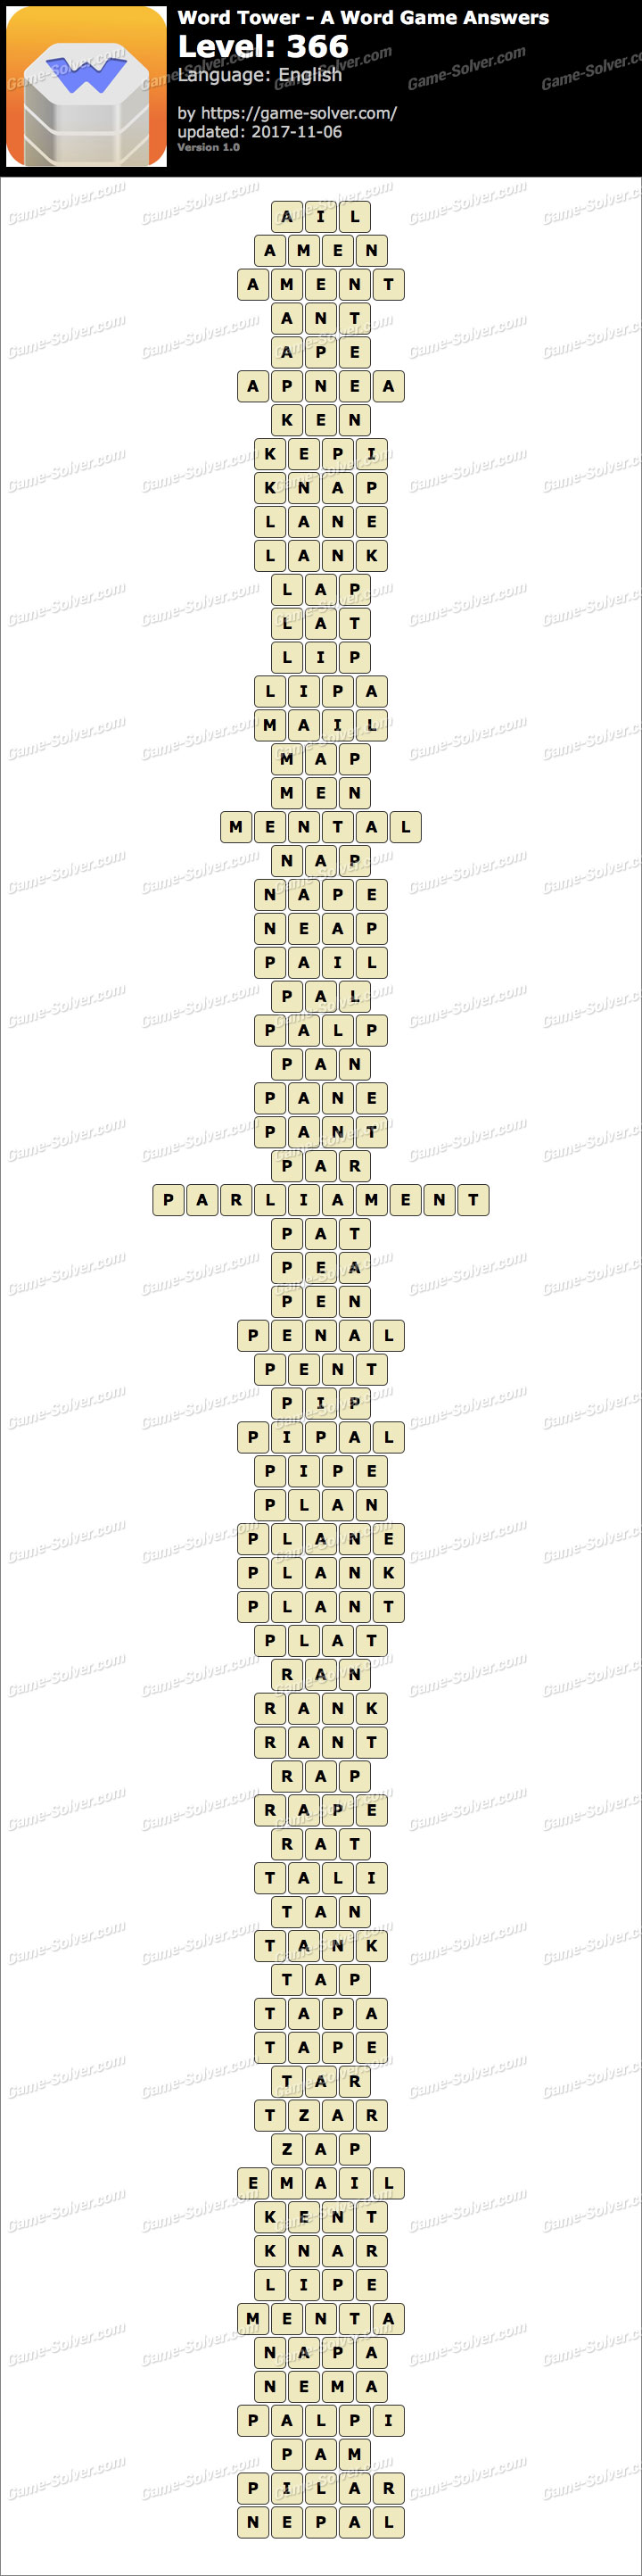 Word Tower Level 366 Answers